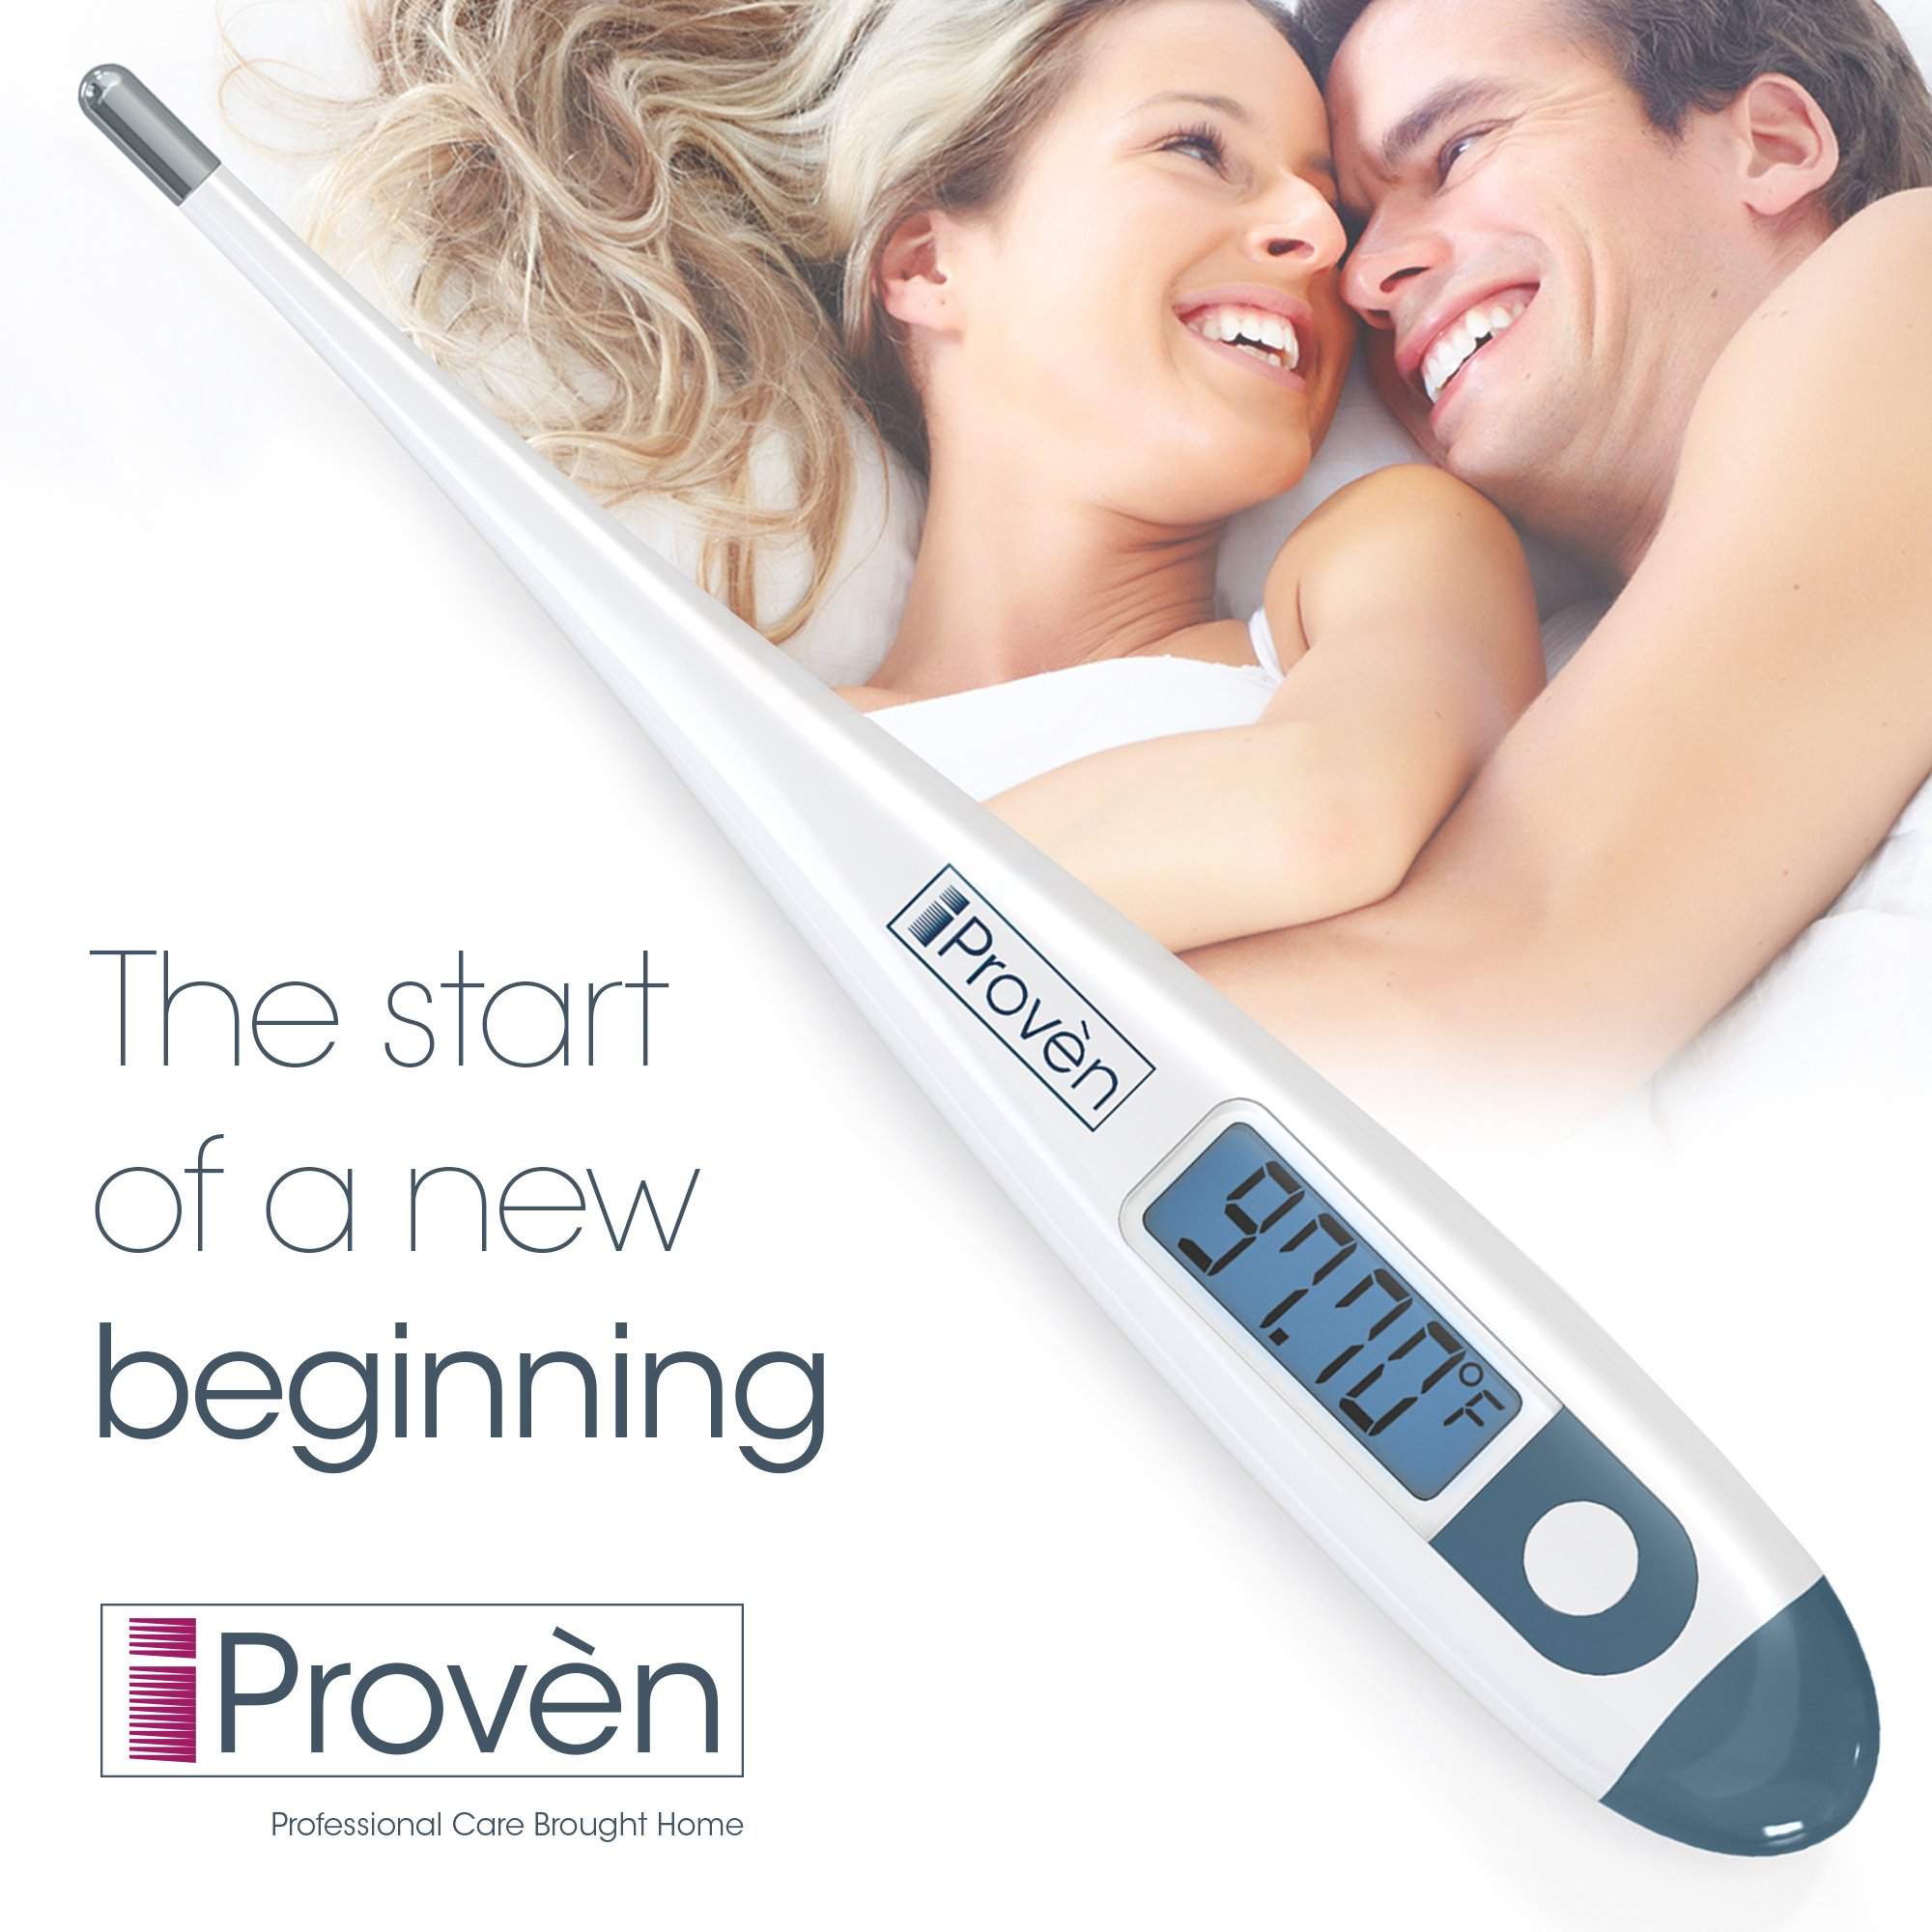 Clinical Basal Thermometer - BBT-113i by iProvèn Updated Model with Backlight - Accurate 1/100th Degree, Highly Sensitive, Perfect Companion for Family Planning by iProvèn (Image #3)